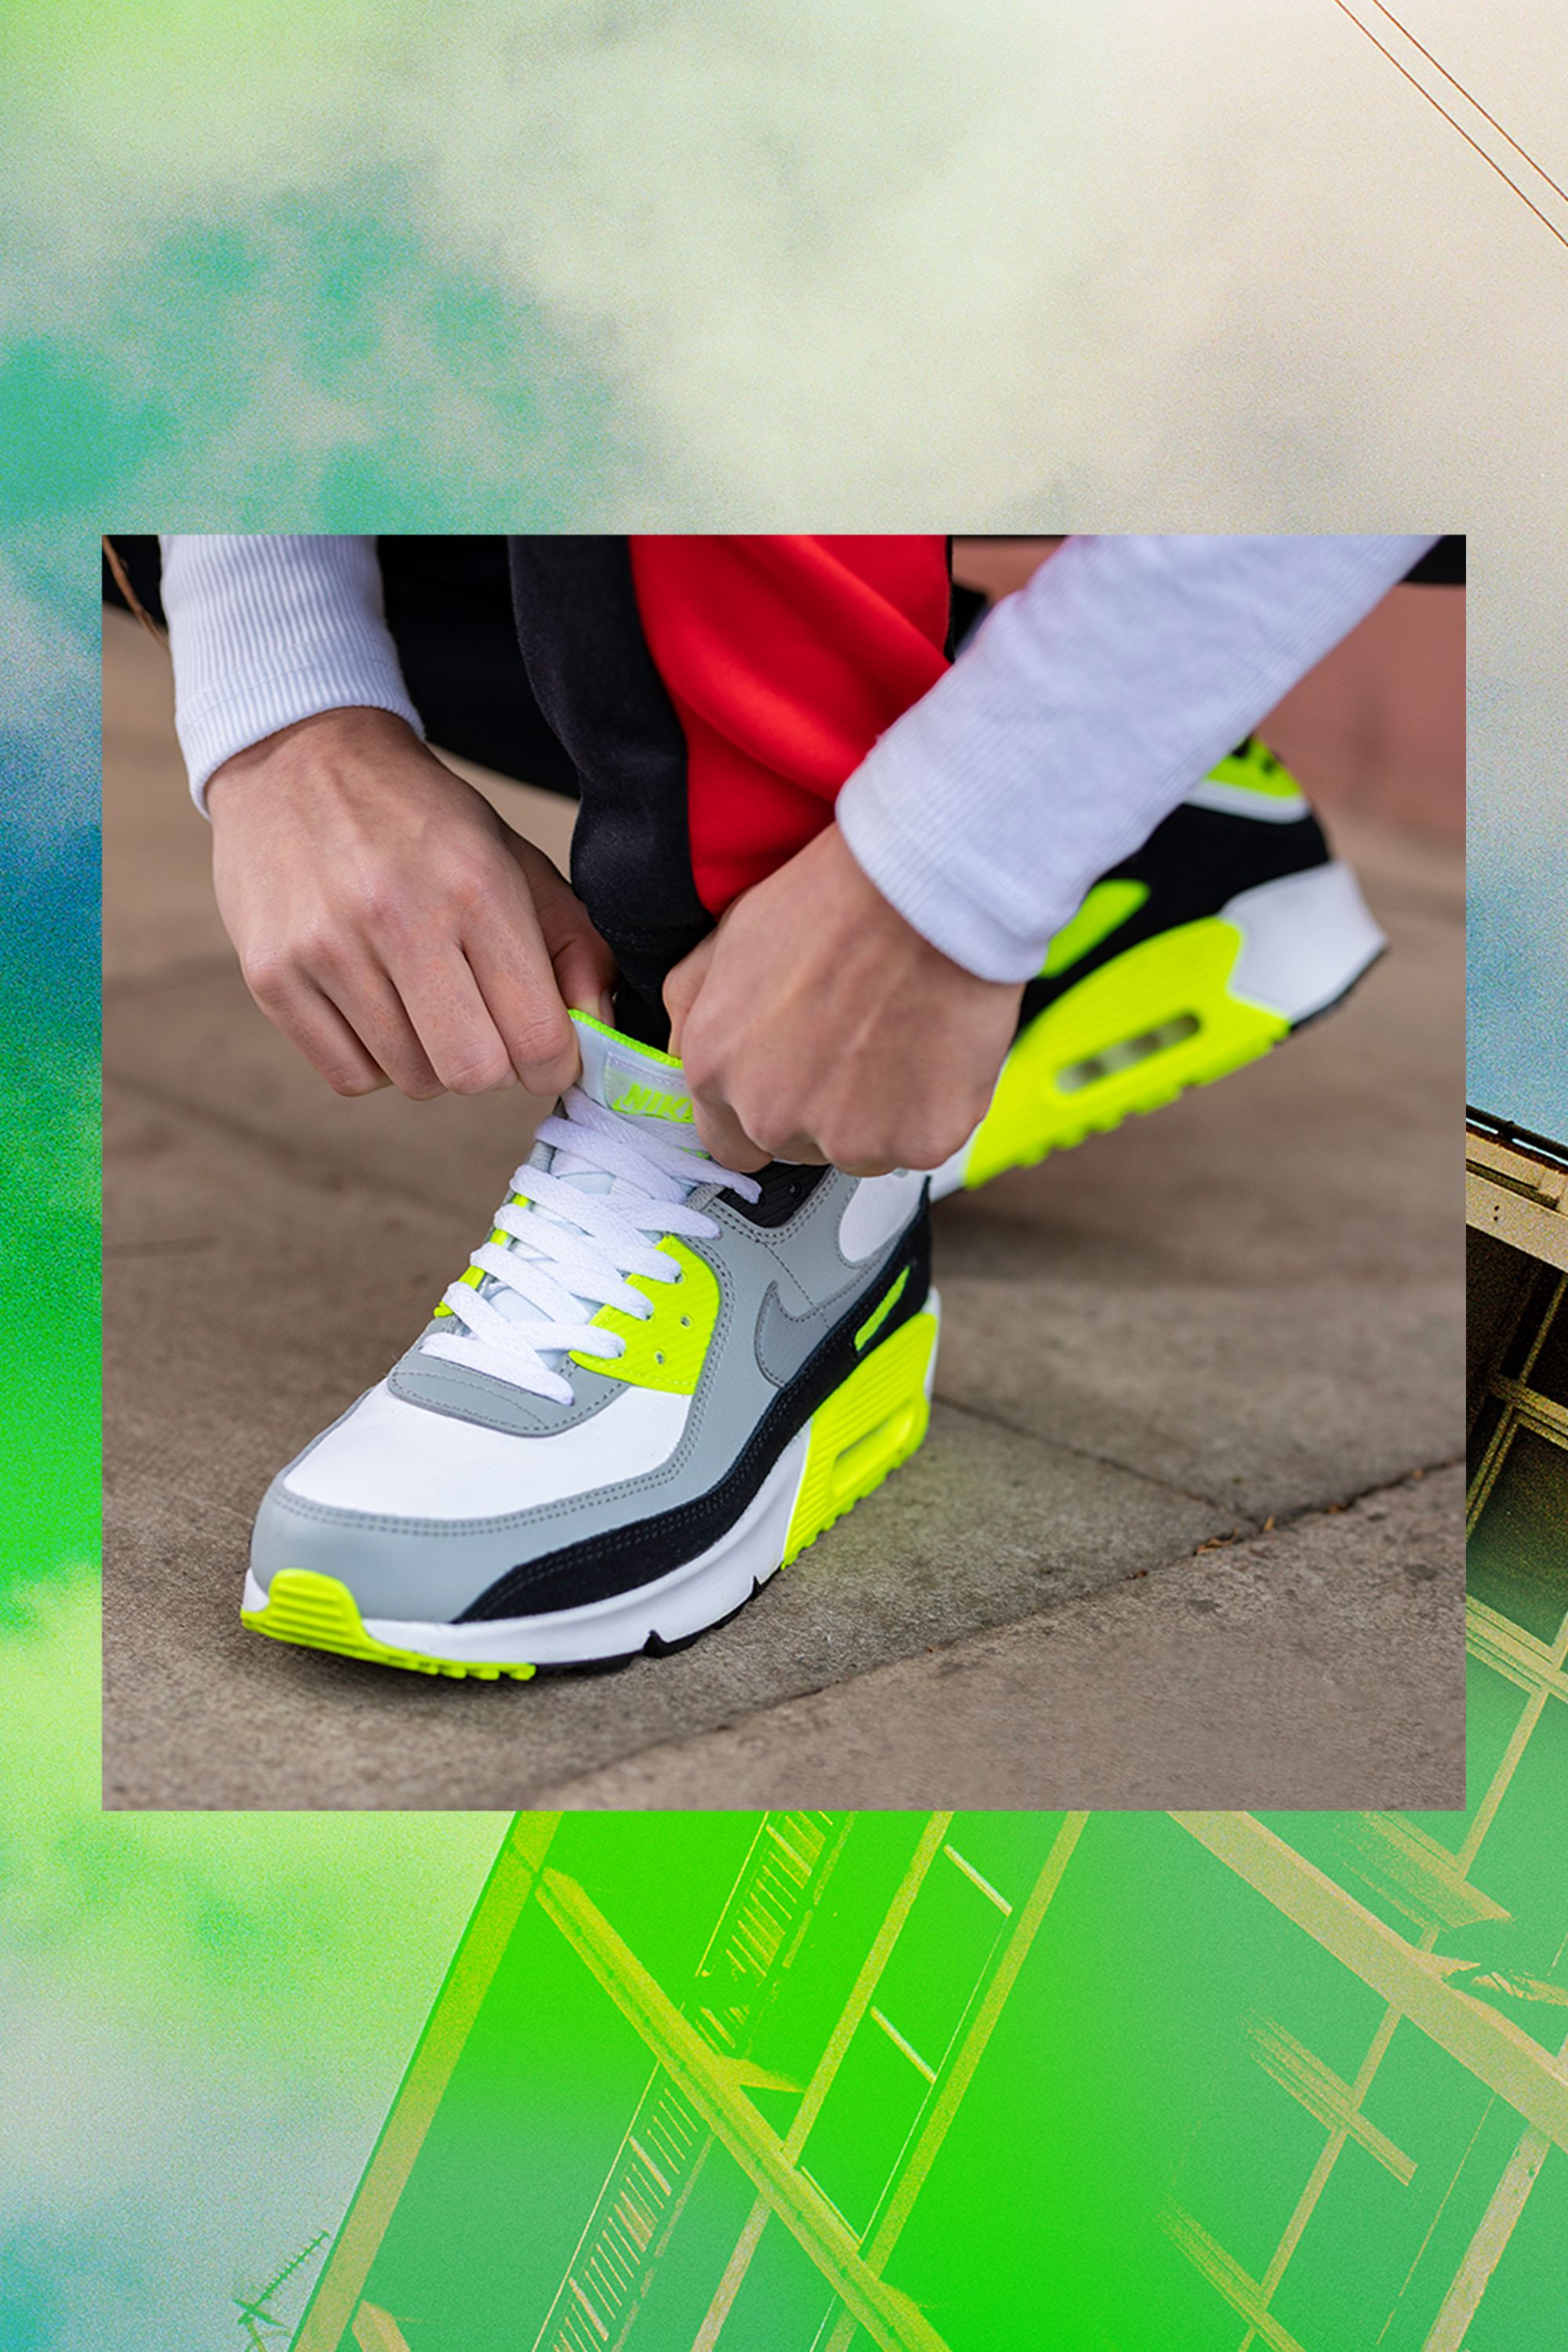 The Nike Air Max 90 was designed for those who go against